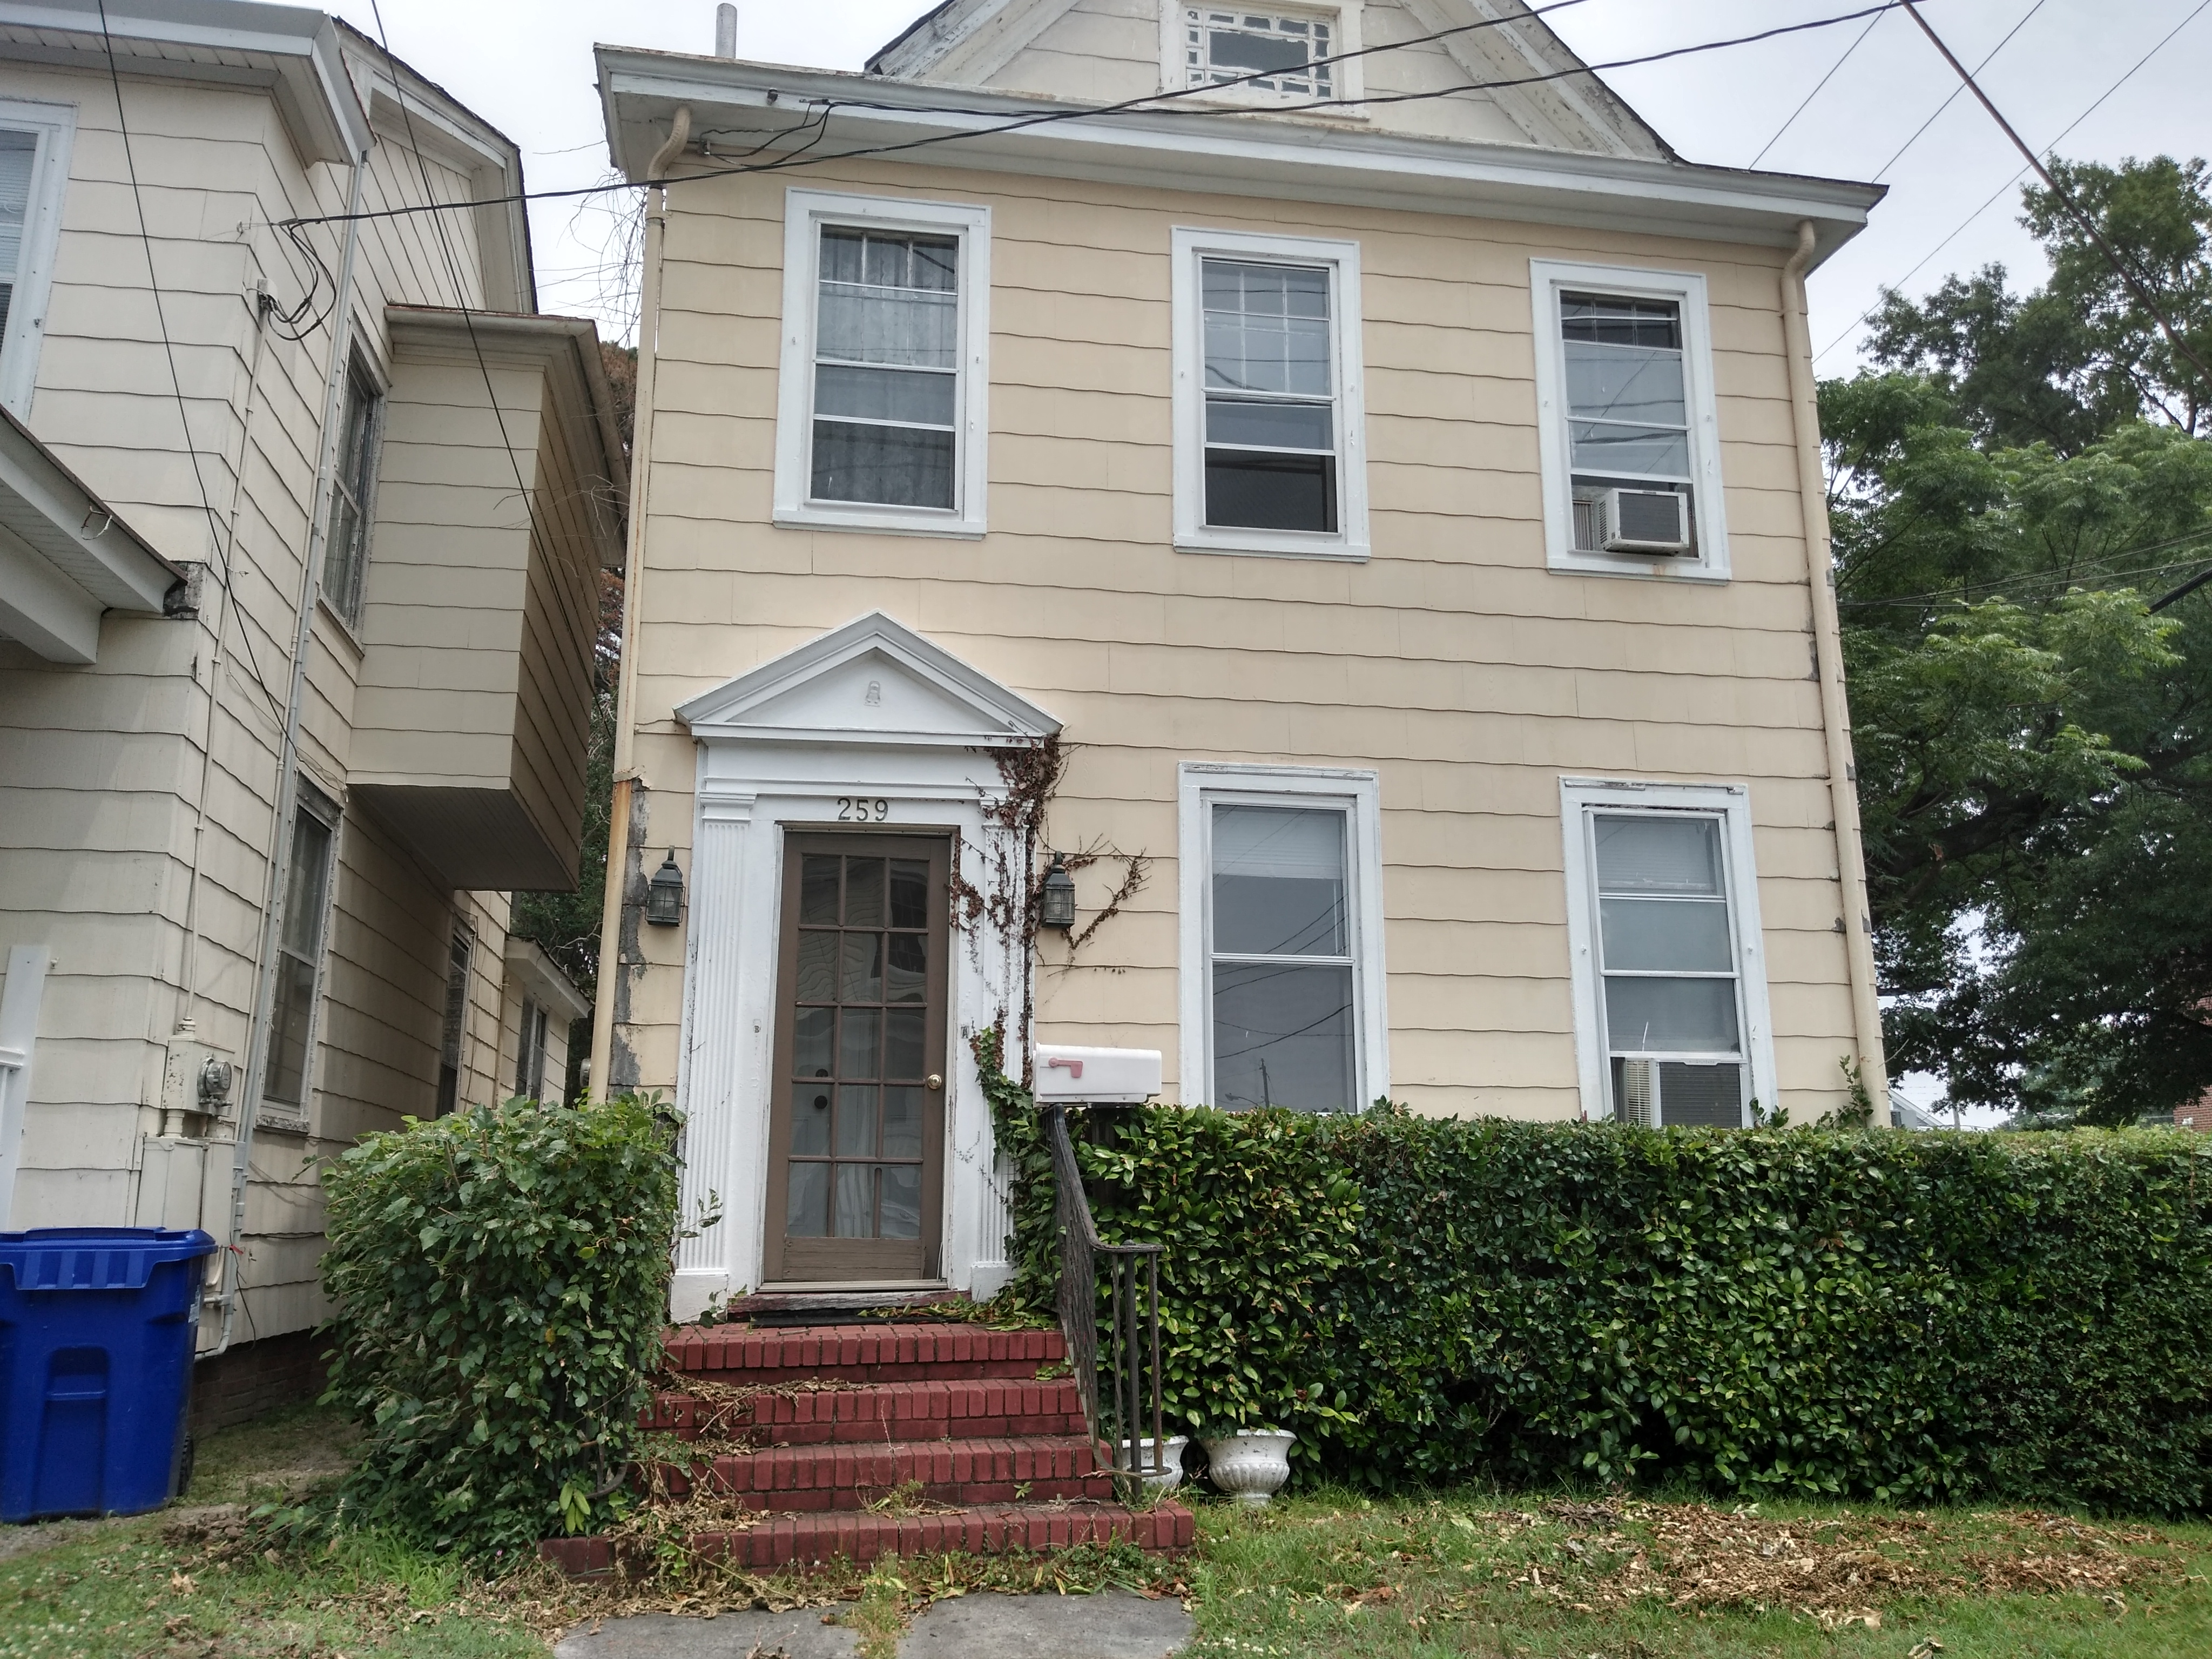 259 Armstrong St, Portsmouth, VA